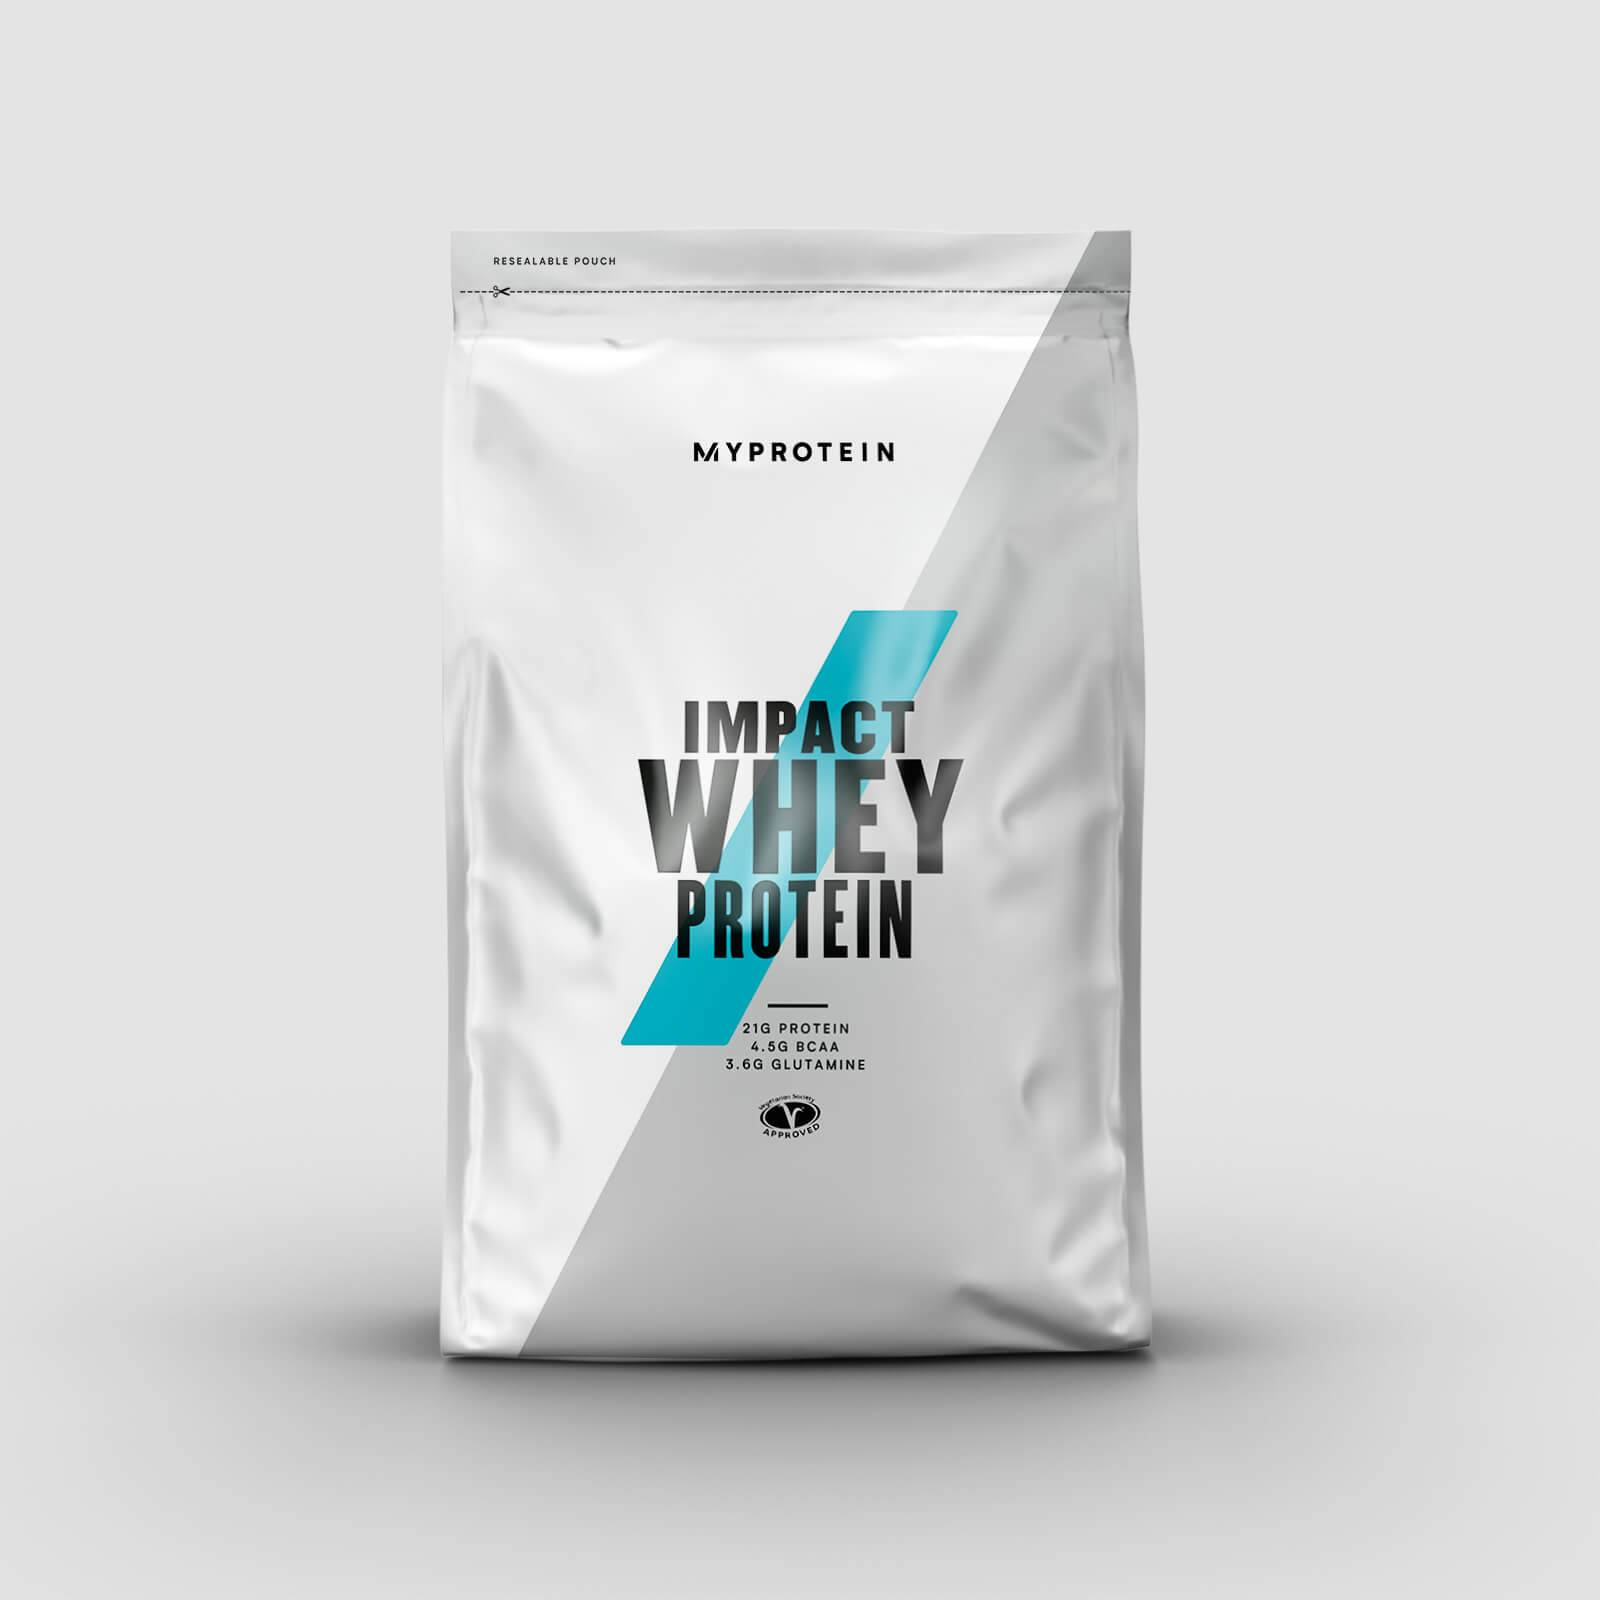 Myprotein Impact Whey Protein - 2.5kg - Sirop d'érable